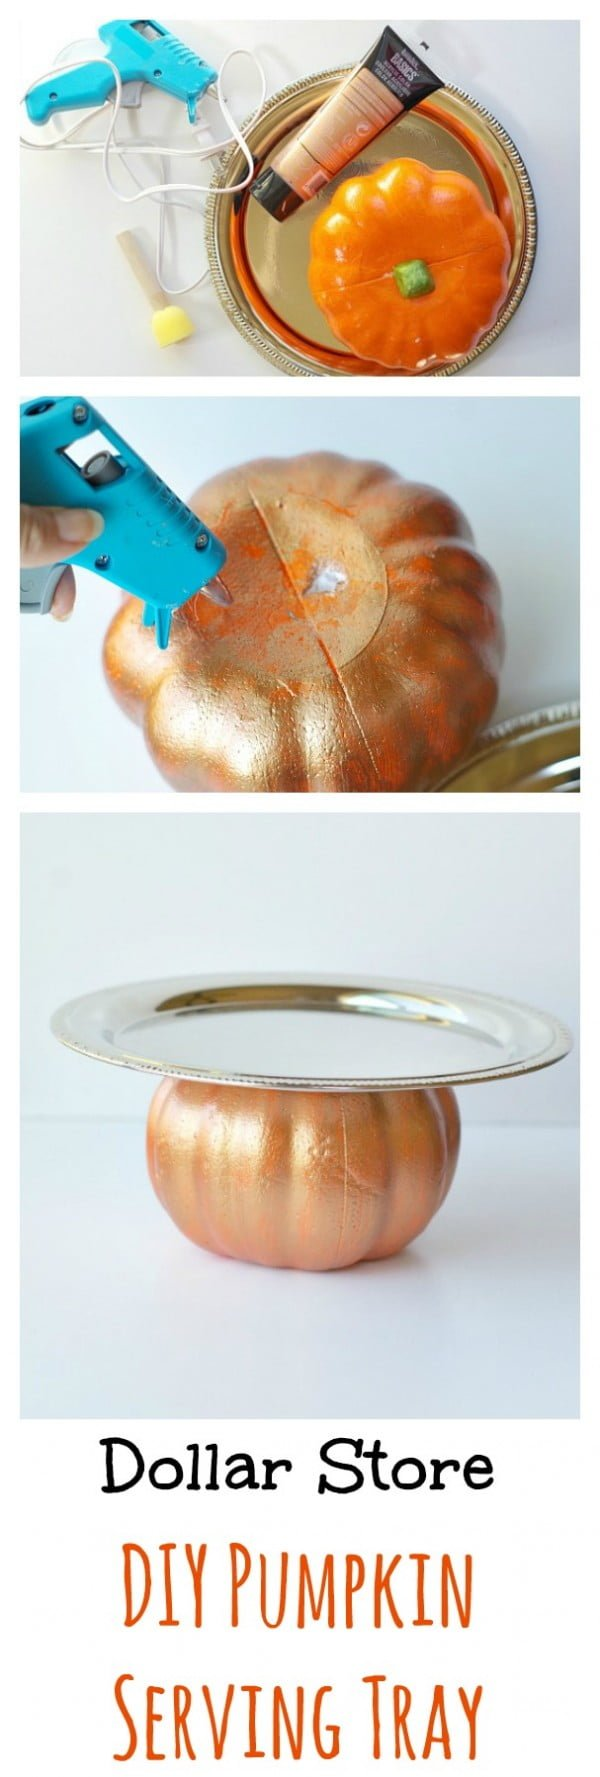 Easy tutorial for a DIY Pumpkin serving tray for Thanksgiving decor